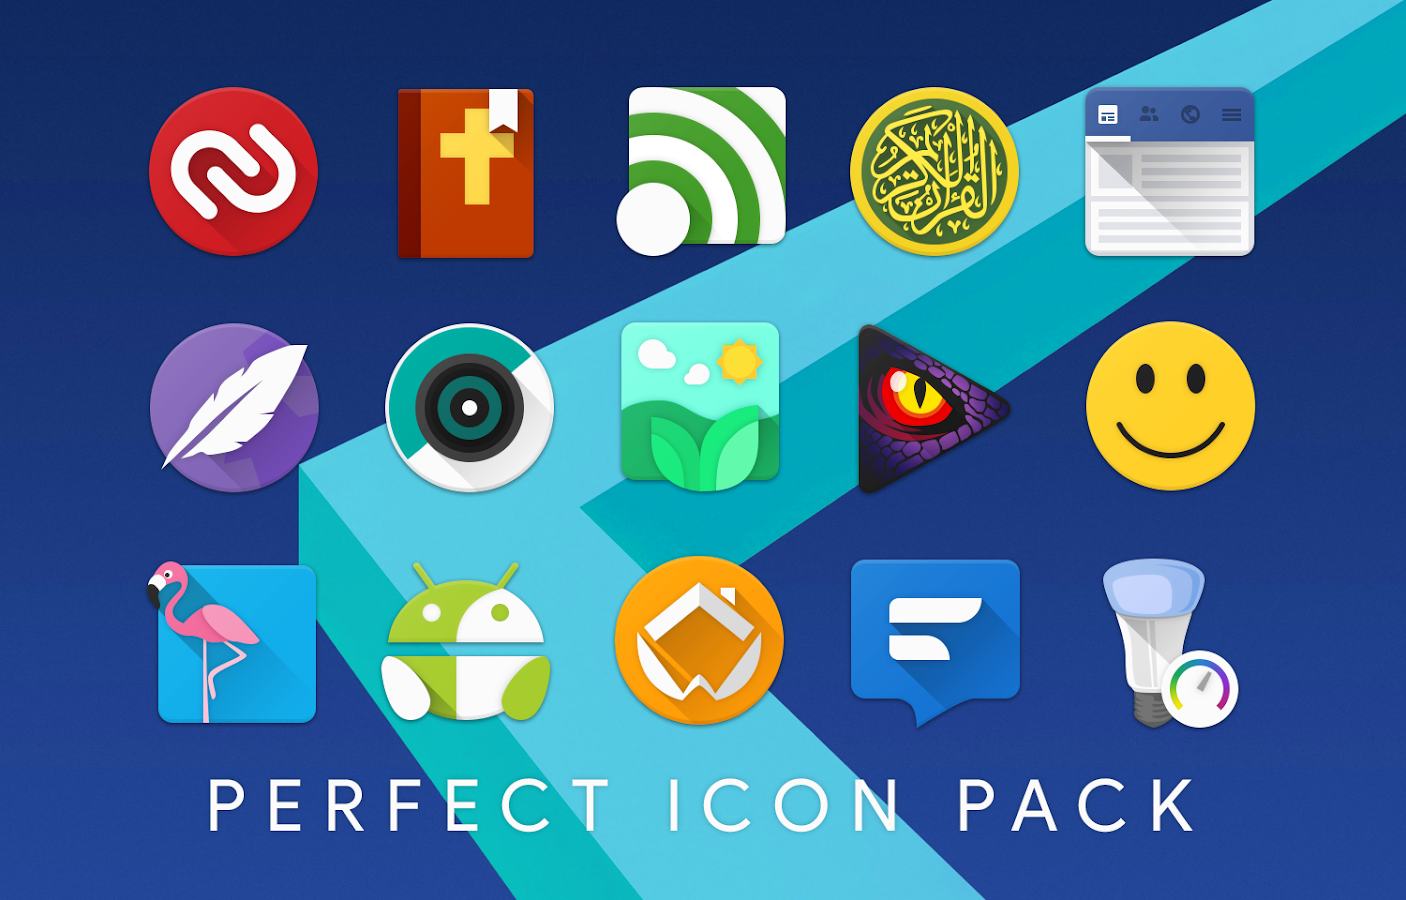 Perfect Icon Pack Screenshot 3